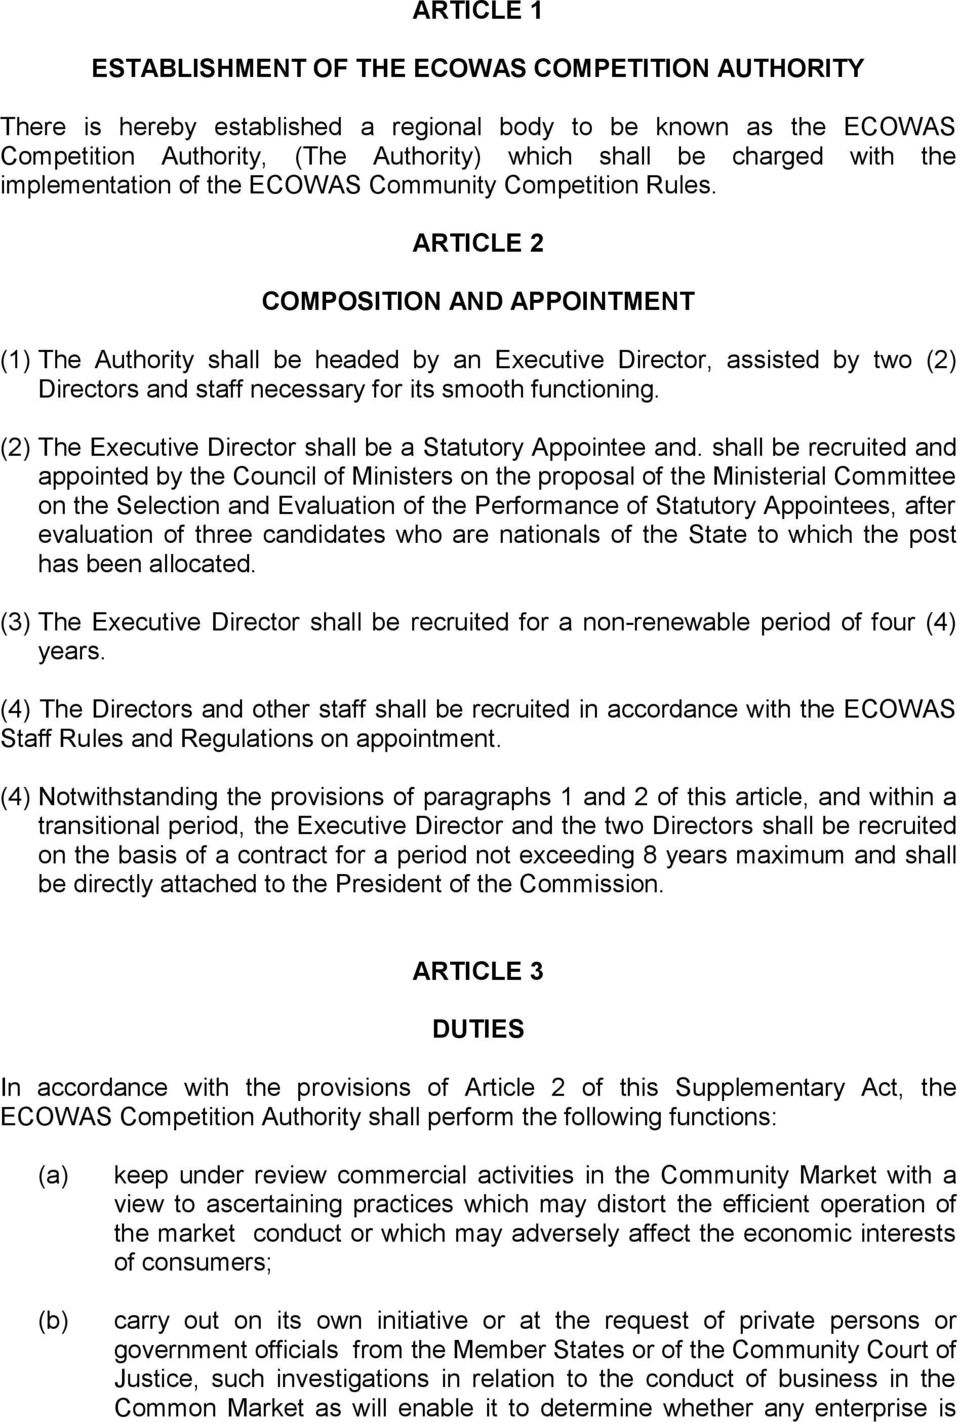 ARTICLE 2 COMPOSITION AND APPOINTMENT (1) The Authority shall be headed by an Executive Director, assisted by two (2) Directors and staff necessary for its smooth functioning.